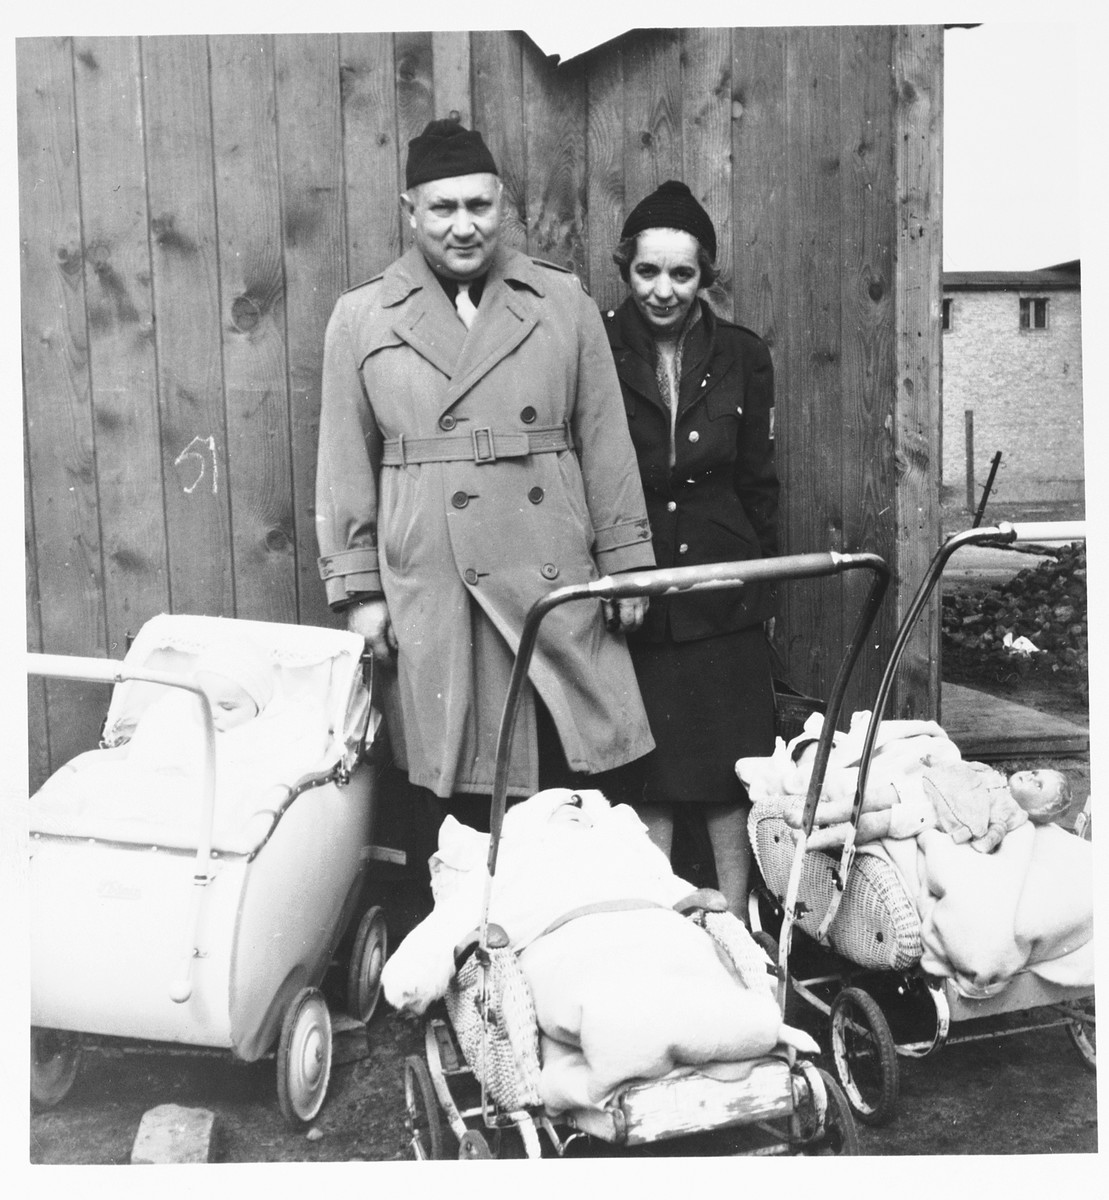 UNRRA camp director Harold Fishbein and an unidentified woman pose with three babies in carriages at the Schlachtensee displaced persons camp.